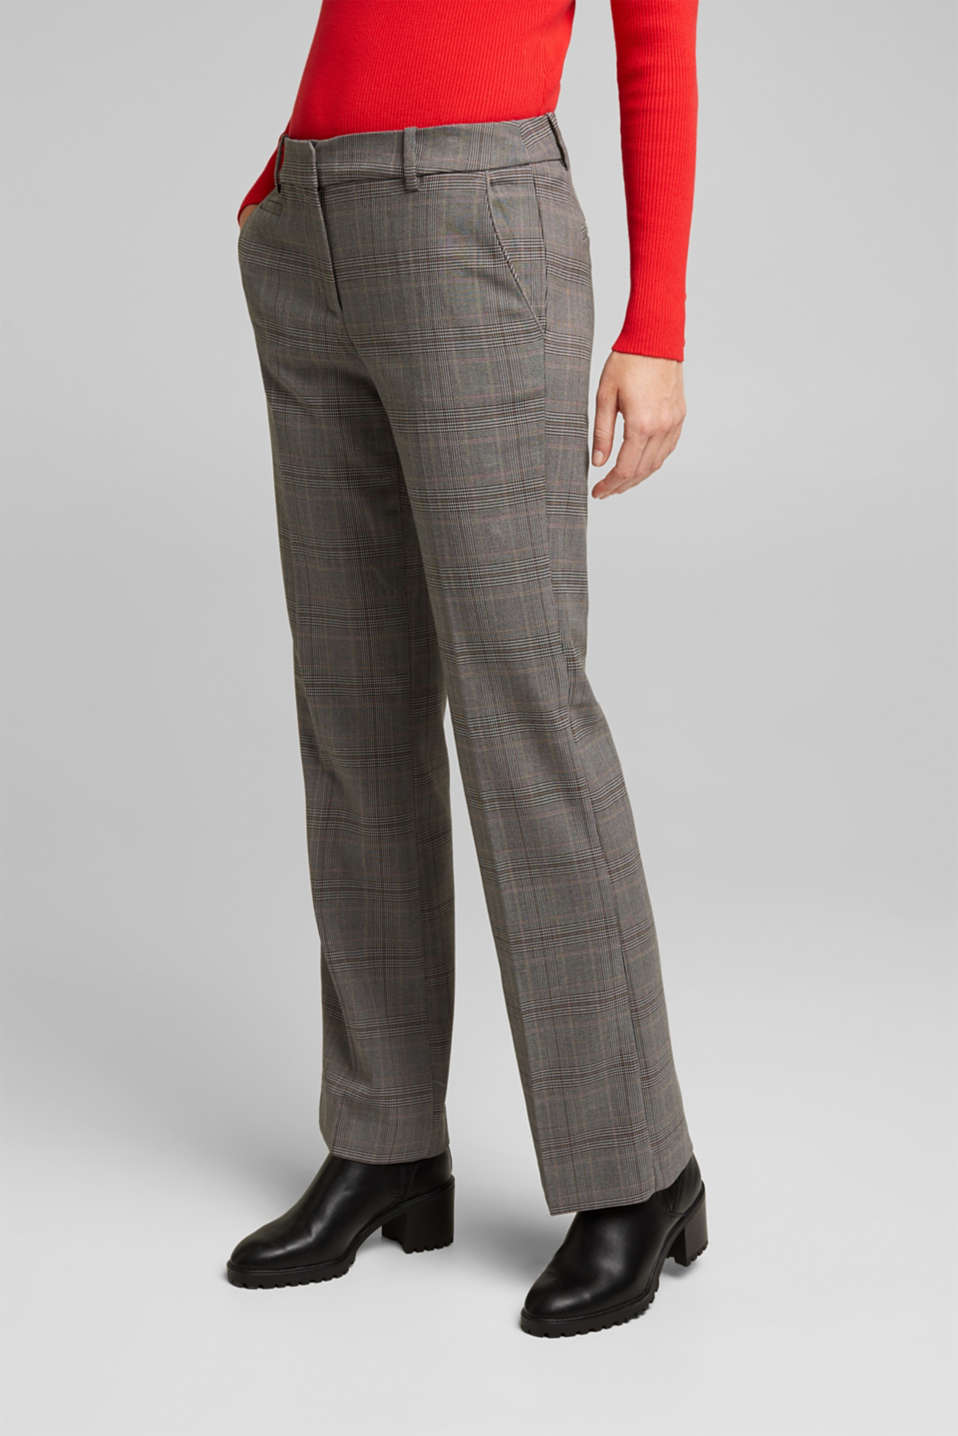 Esprit - Stretchy trousers with a Prince of Wales check pattern